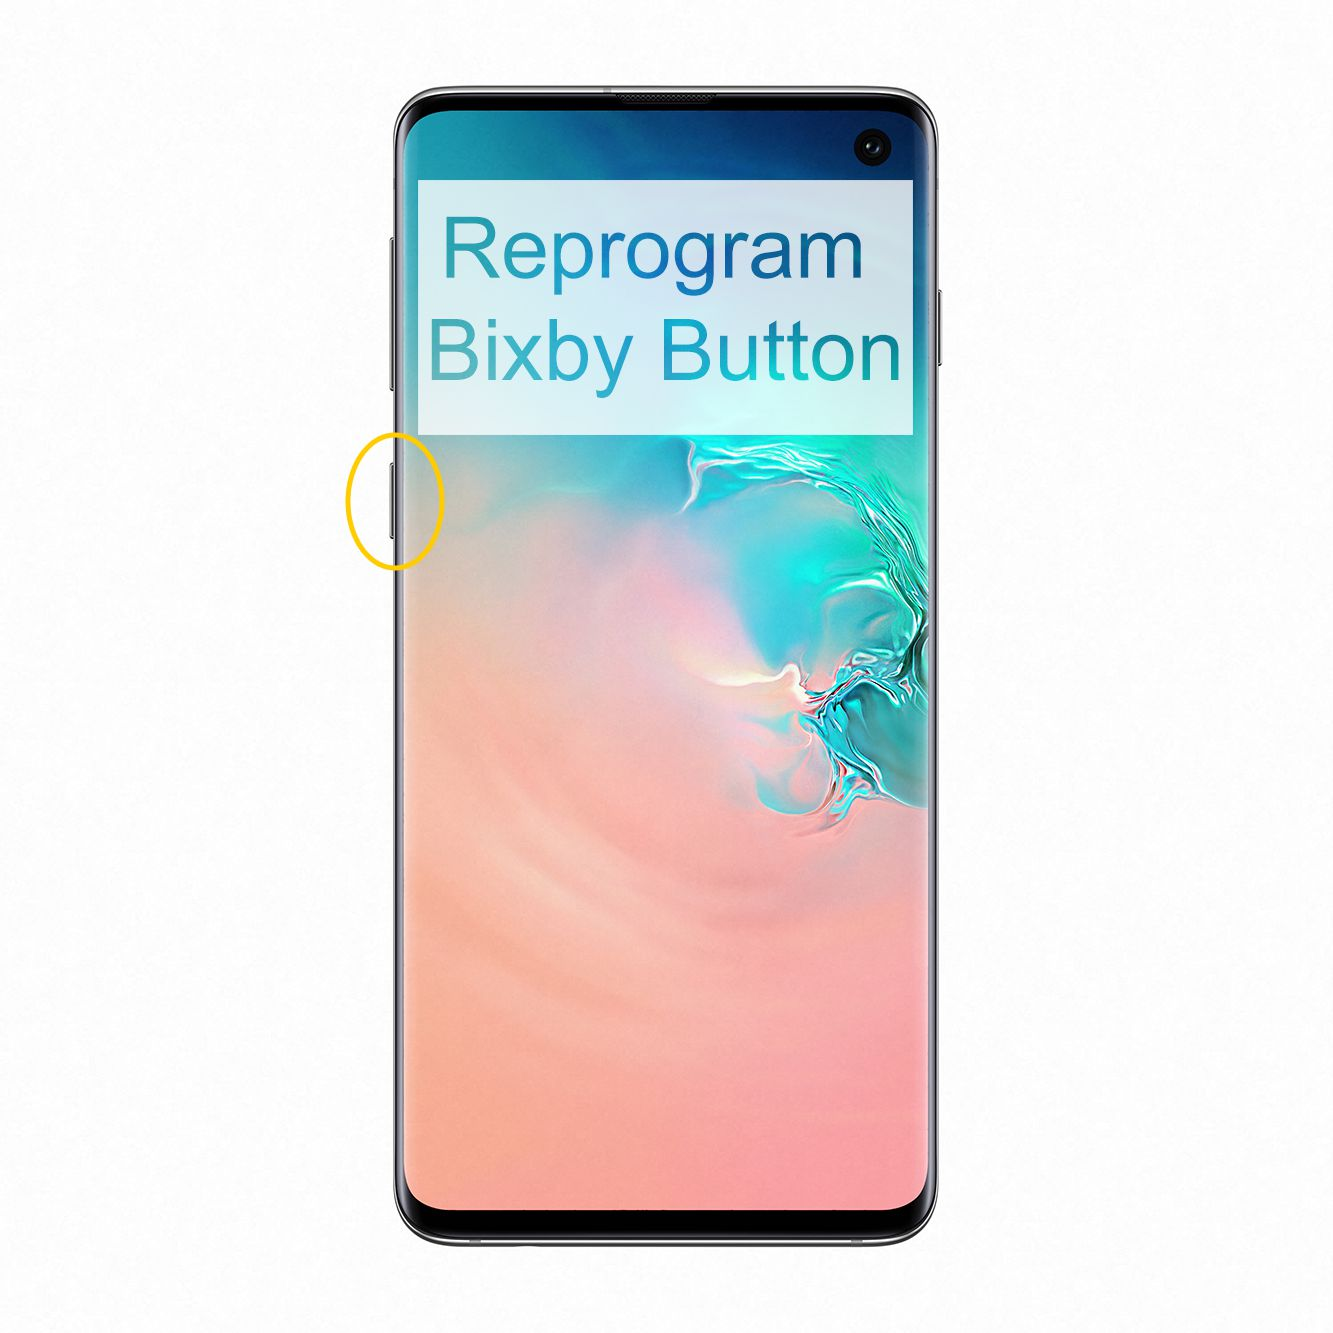 Reprogram the Bixby Button to Make It Behave the Way You Want